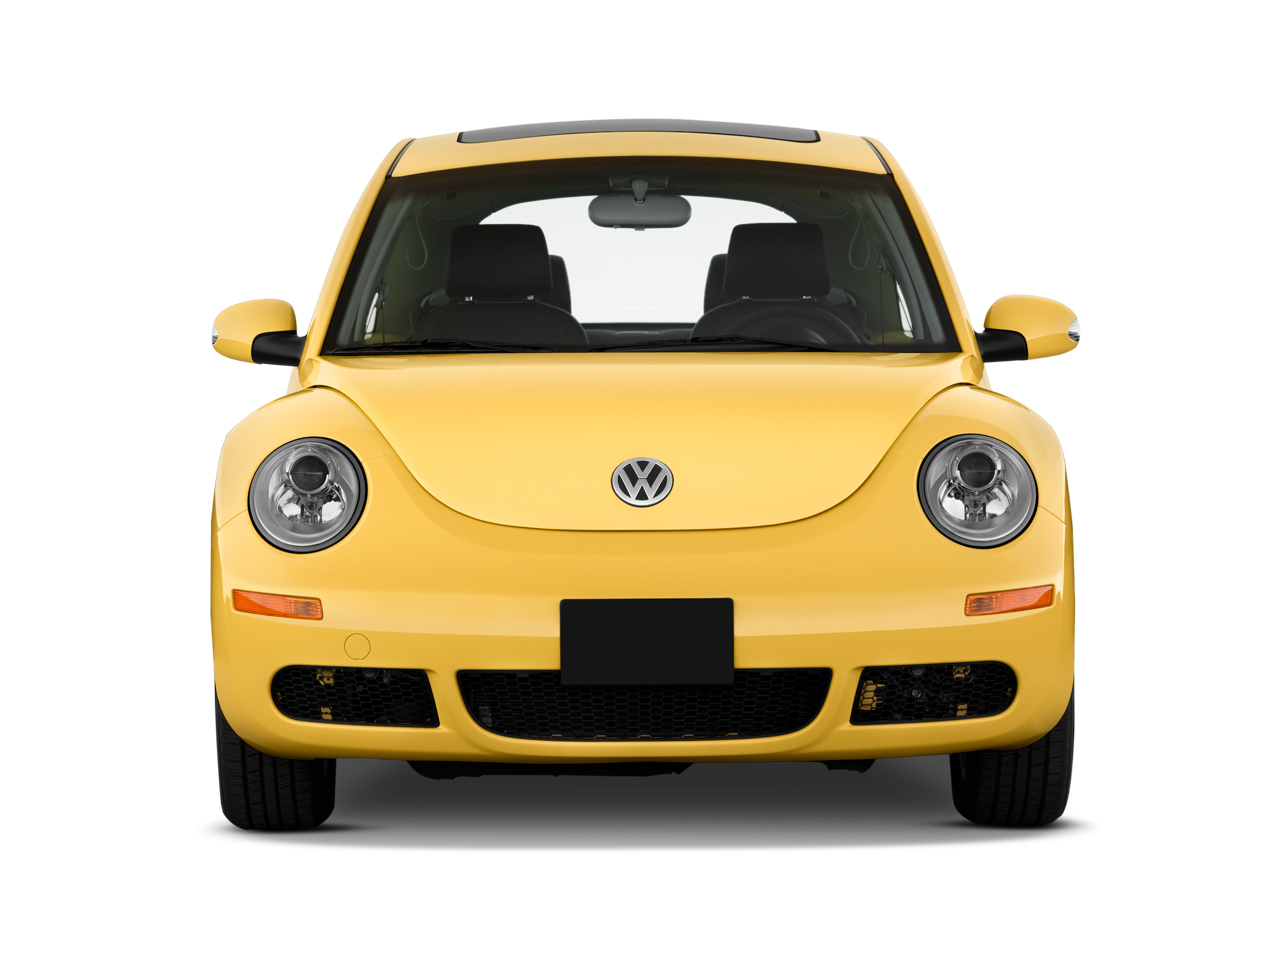 2012 VW Beetle Rendered: Still Bug-Shaped, Less Girly